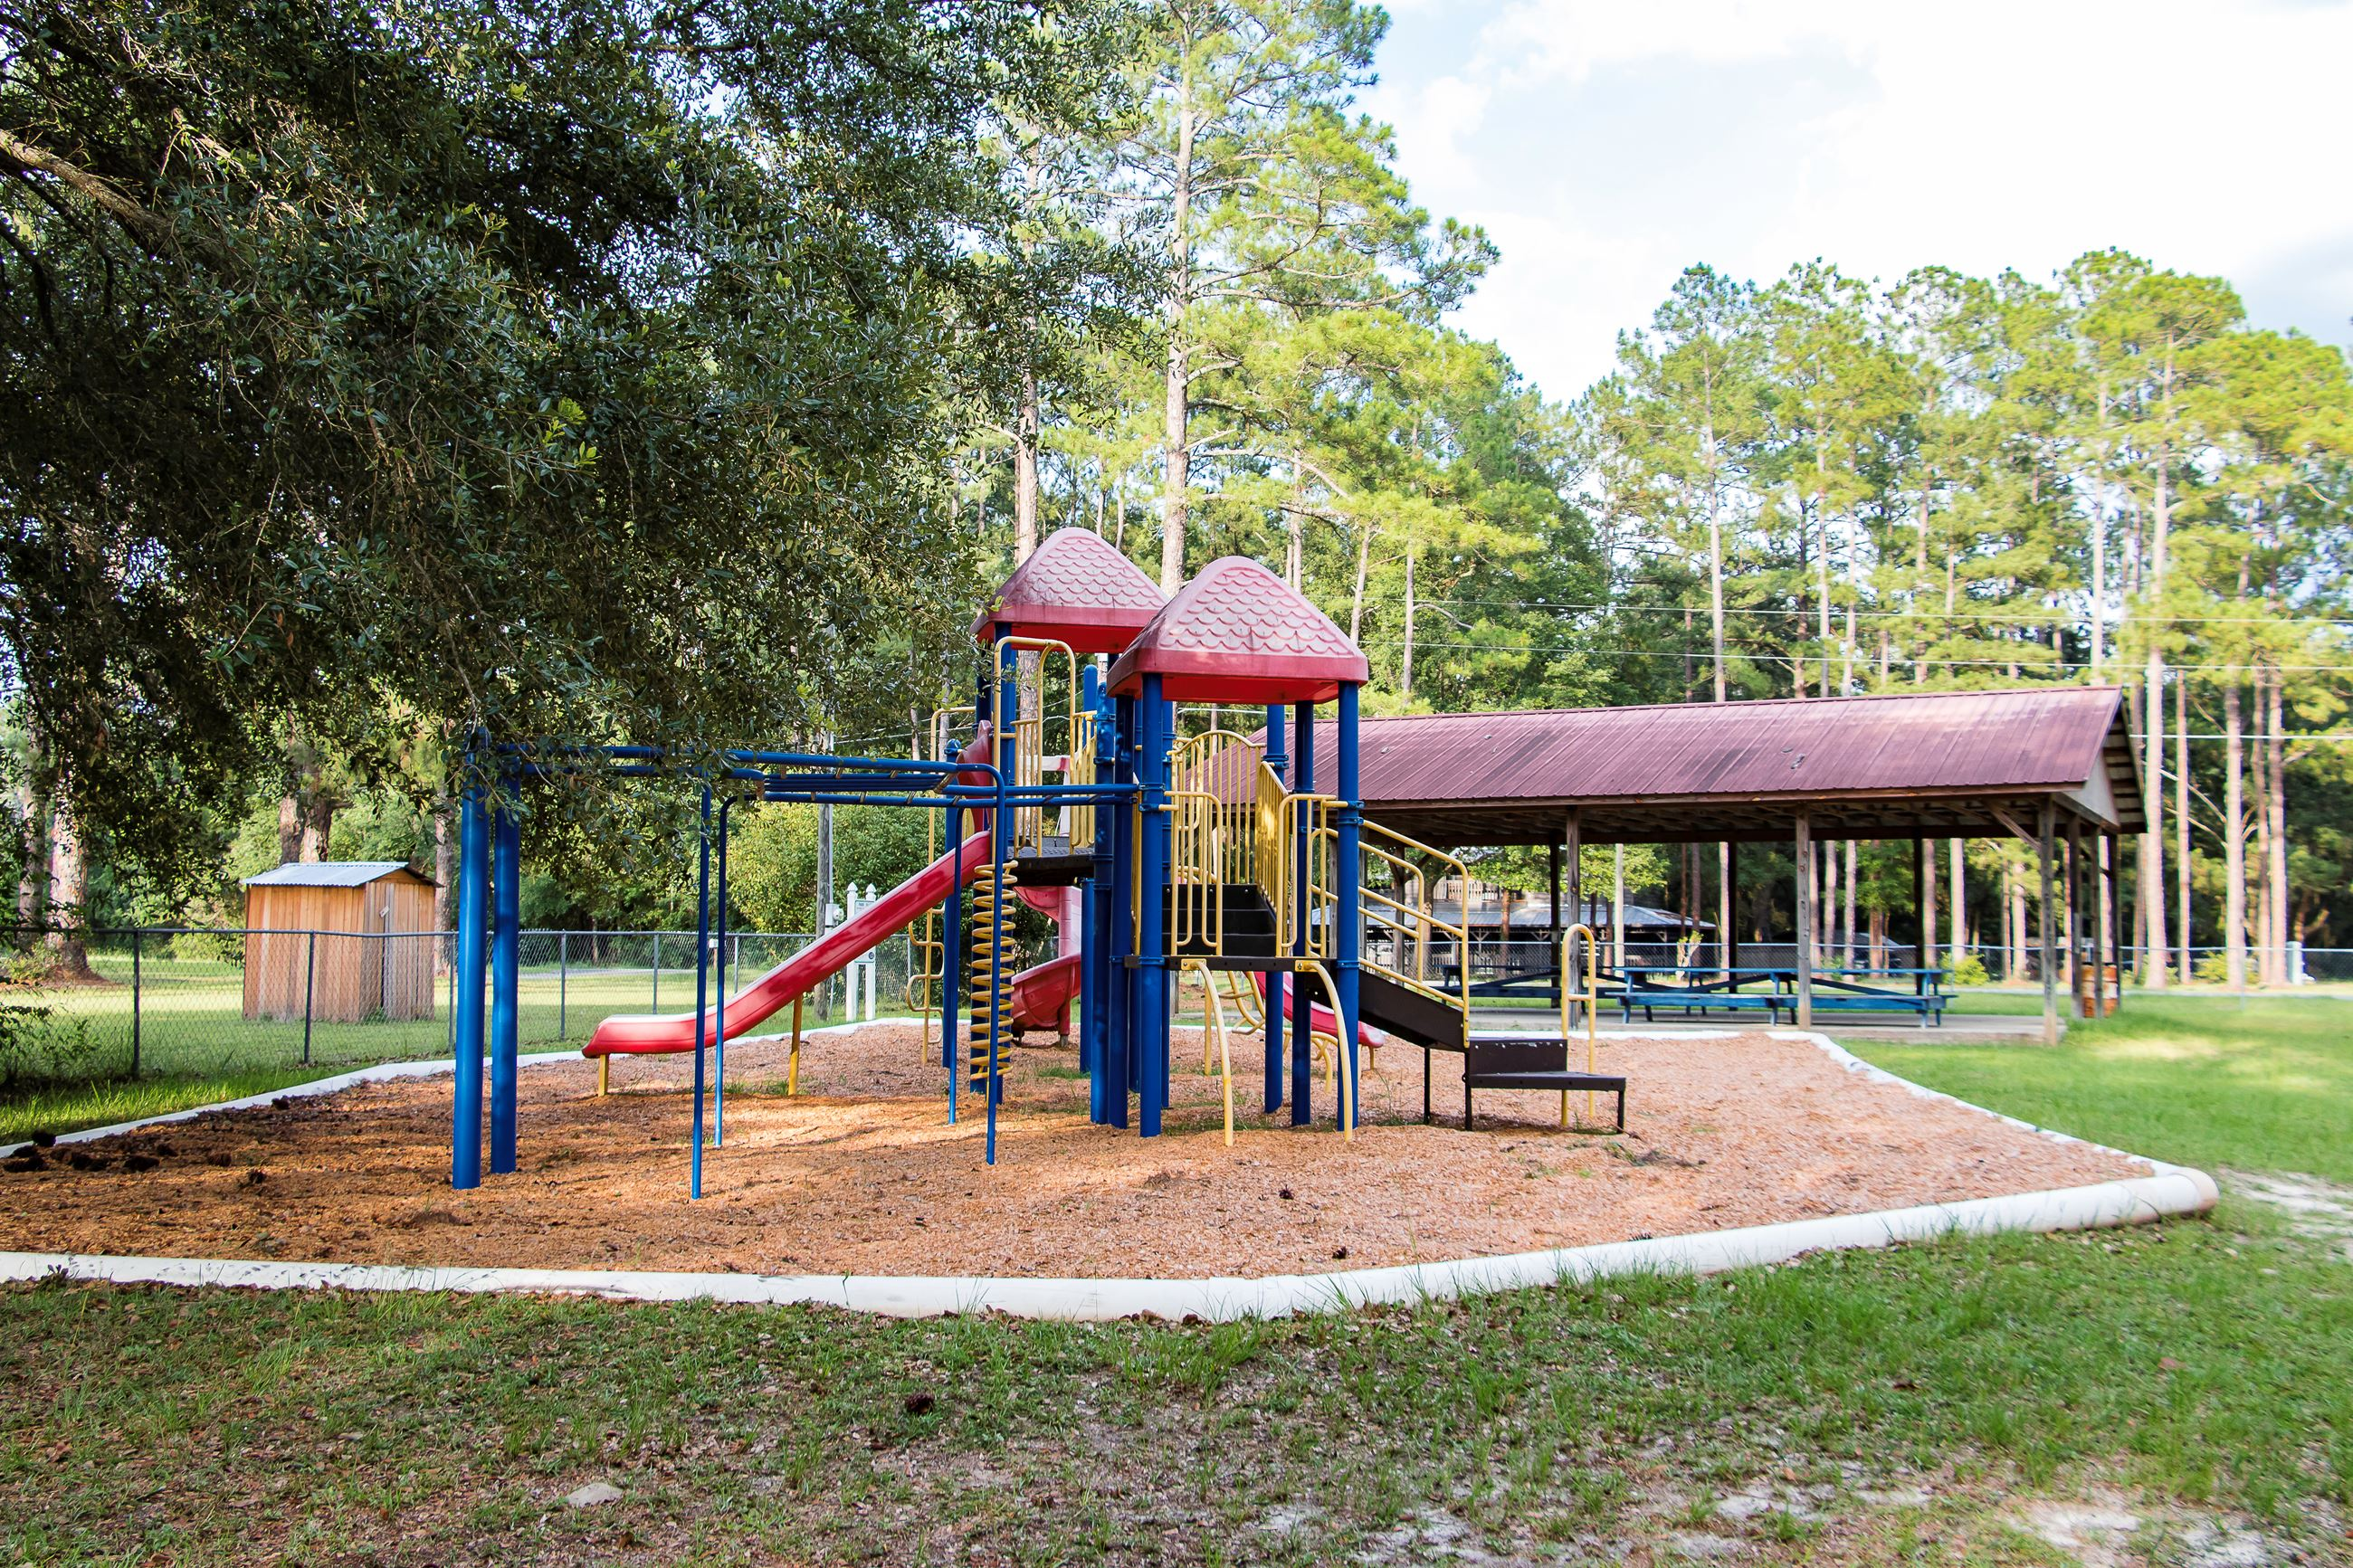 An image of a playground with a picnic shelter in the background.